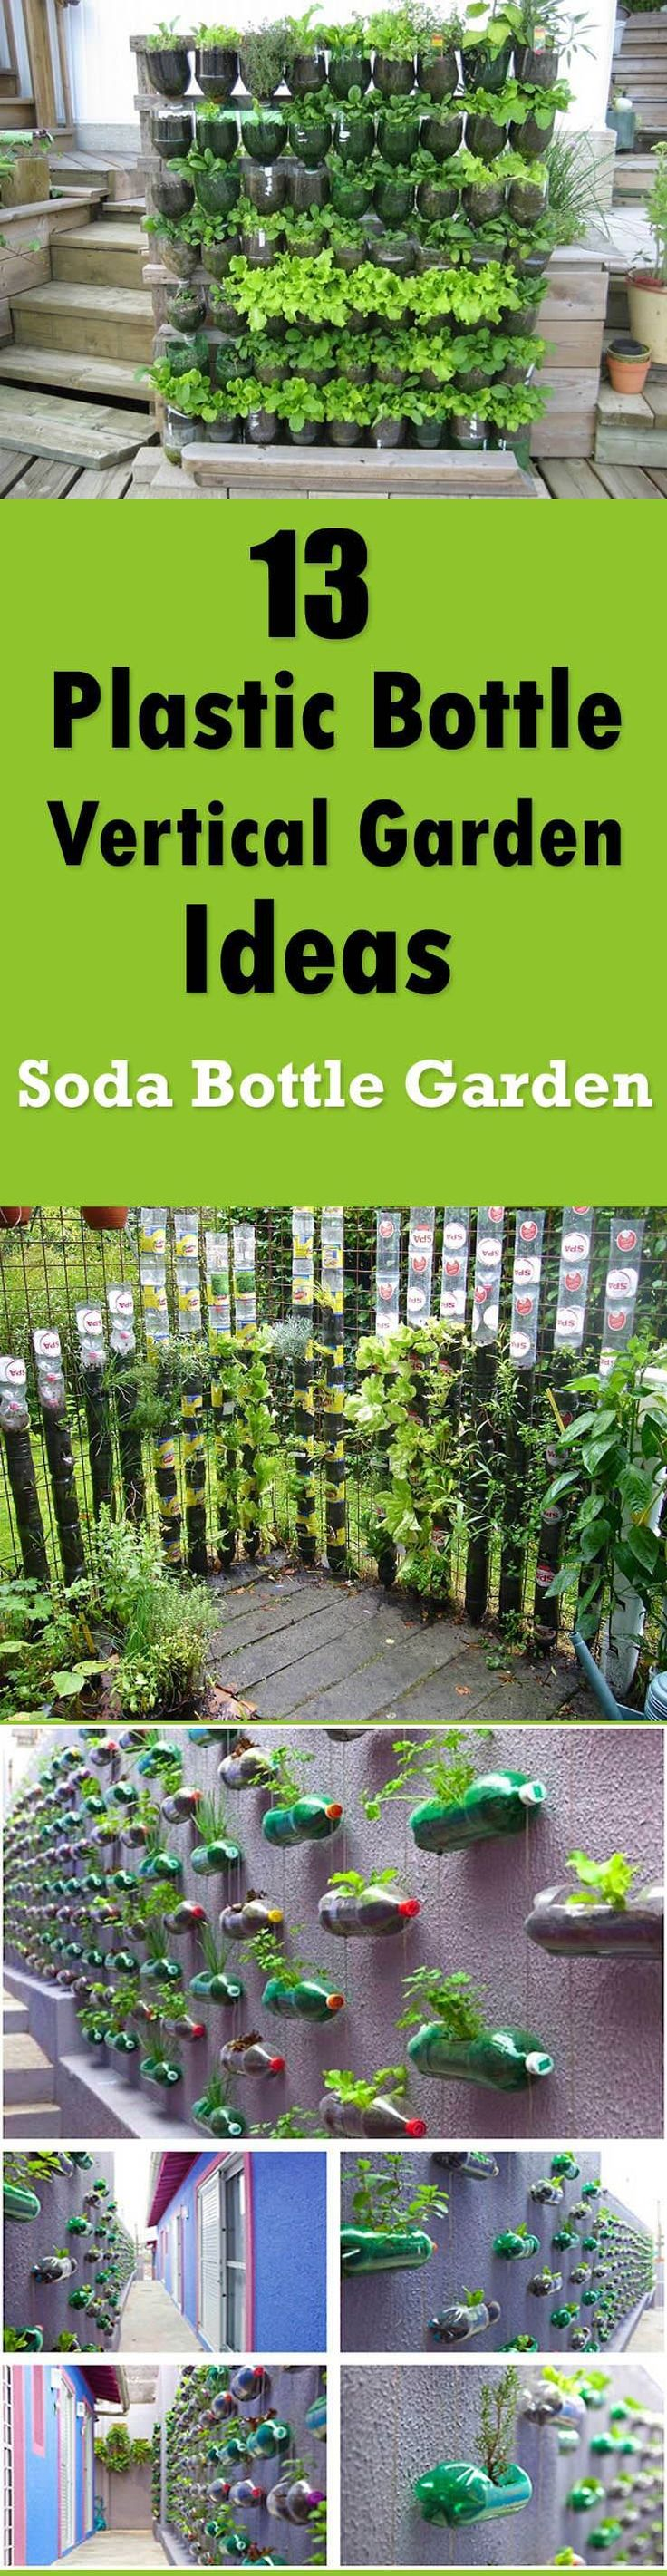 13 Plastic Bottle Vertical Garden Ideas | Bottle garden, Soda ...